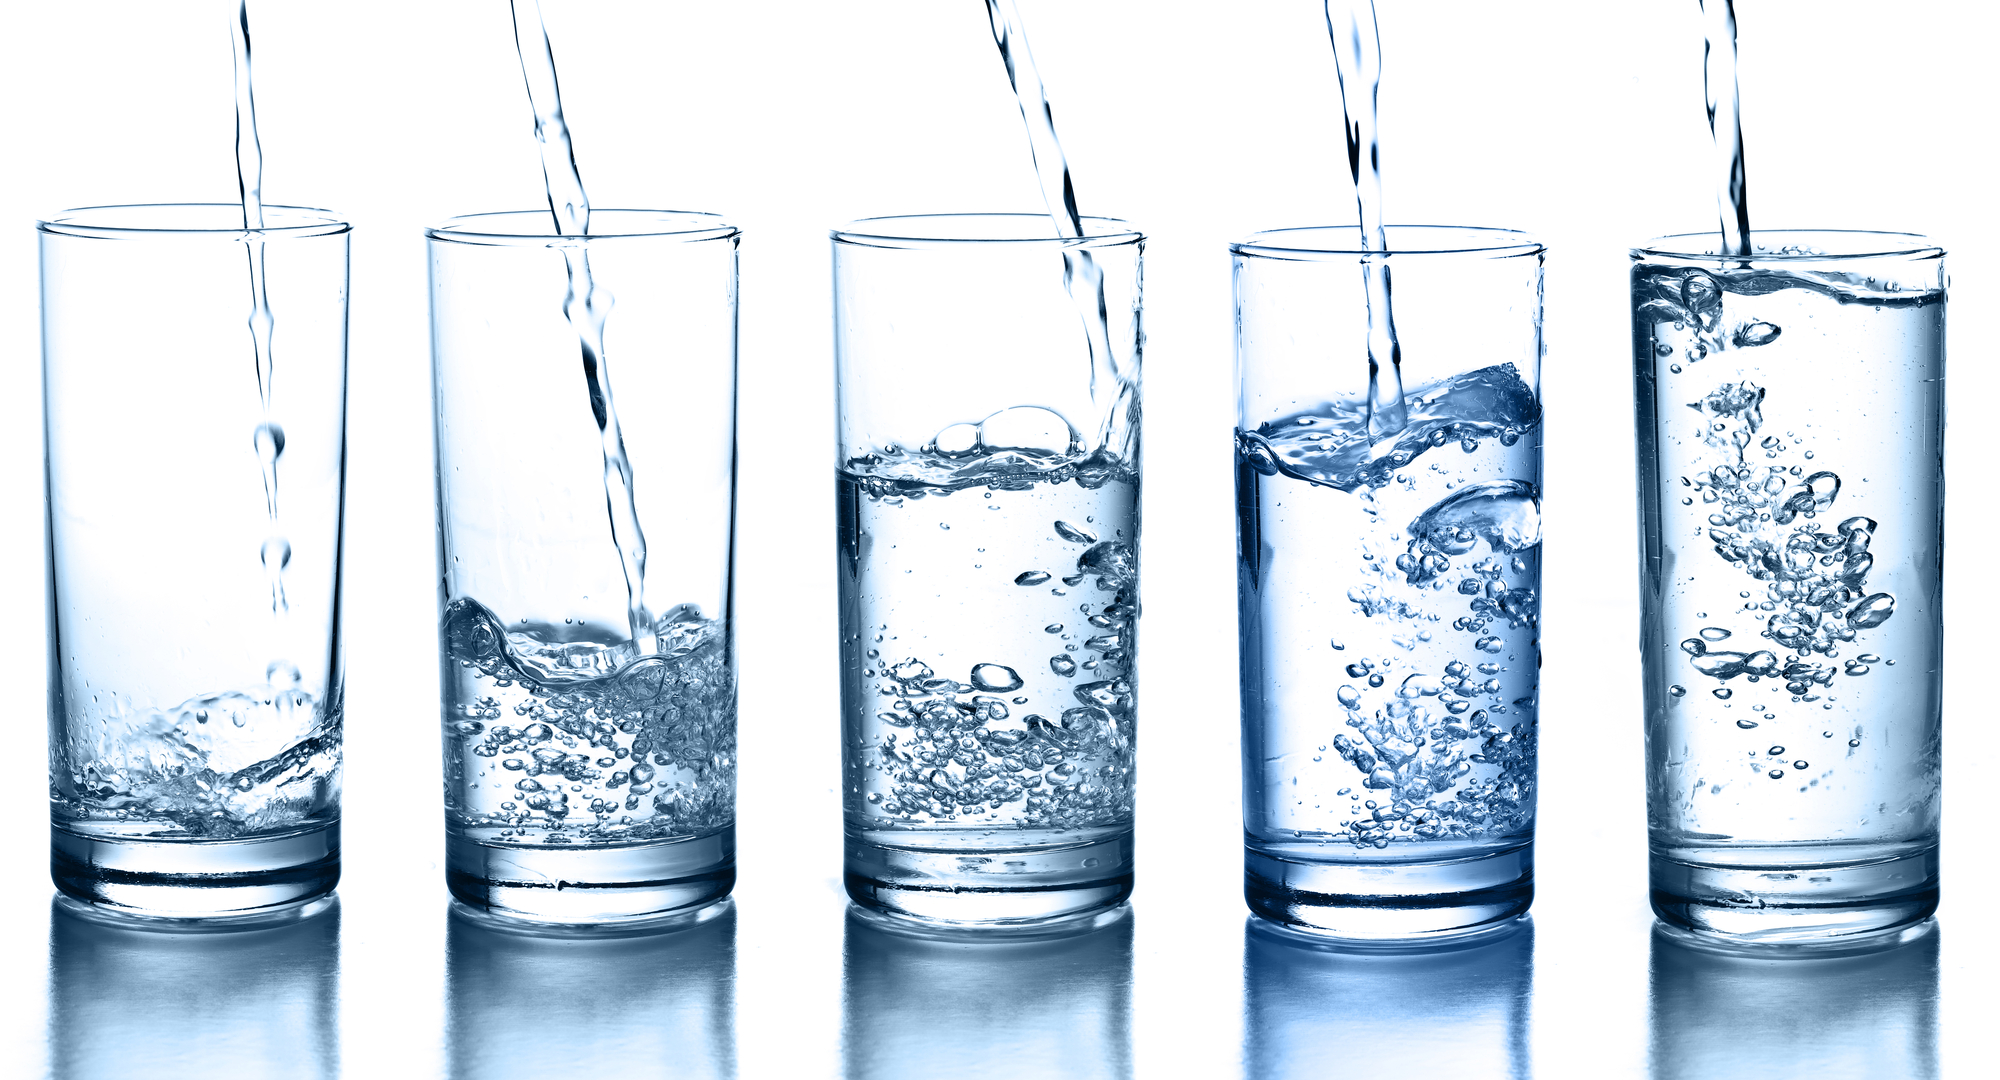 Glasses of drinking water getting filled